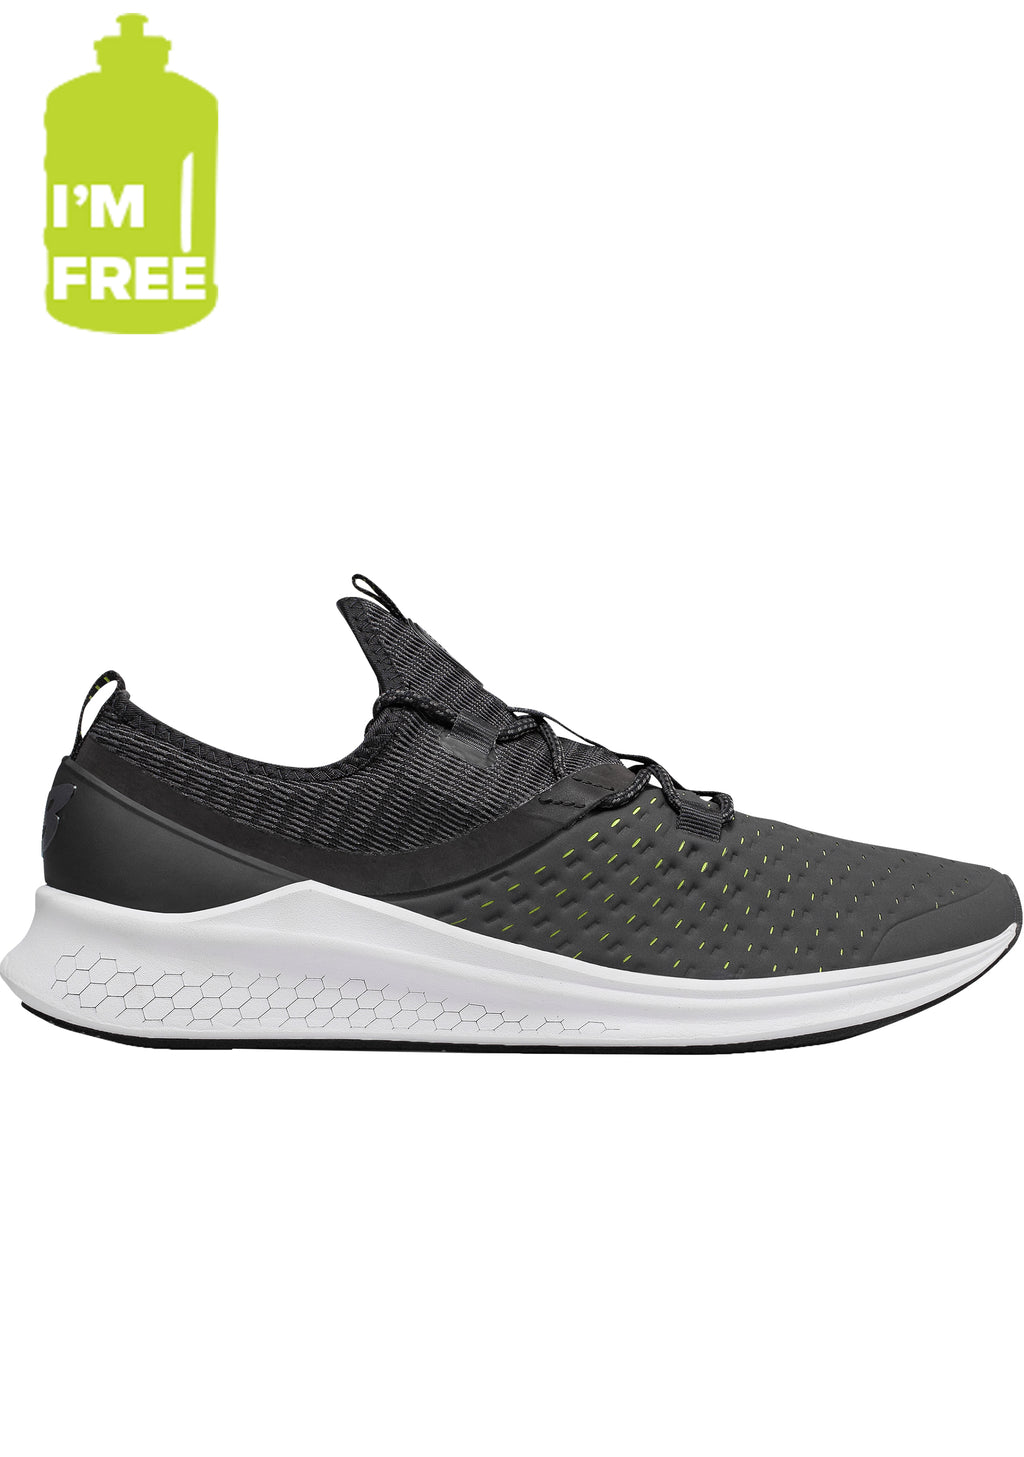 NEW BALANCE MENS FRESH FOAM LAZR WITH FREE 2L WATER BOTTLE <BR> MLAZRHY